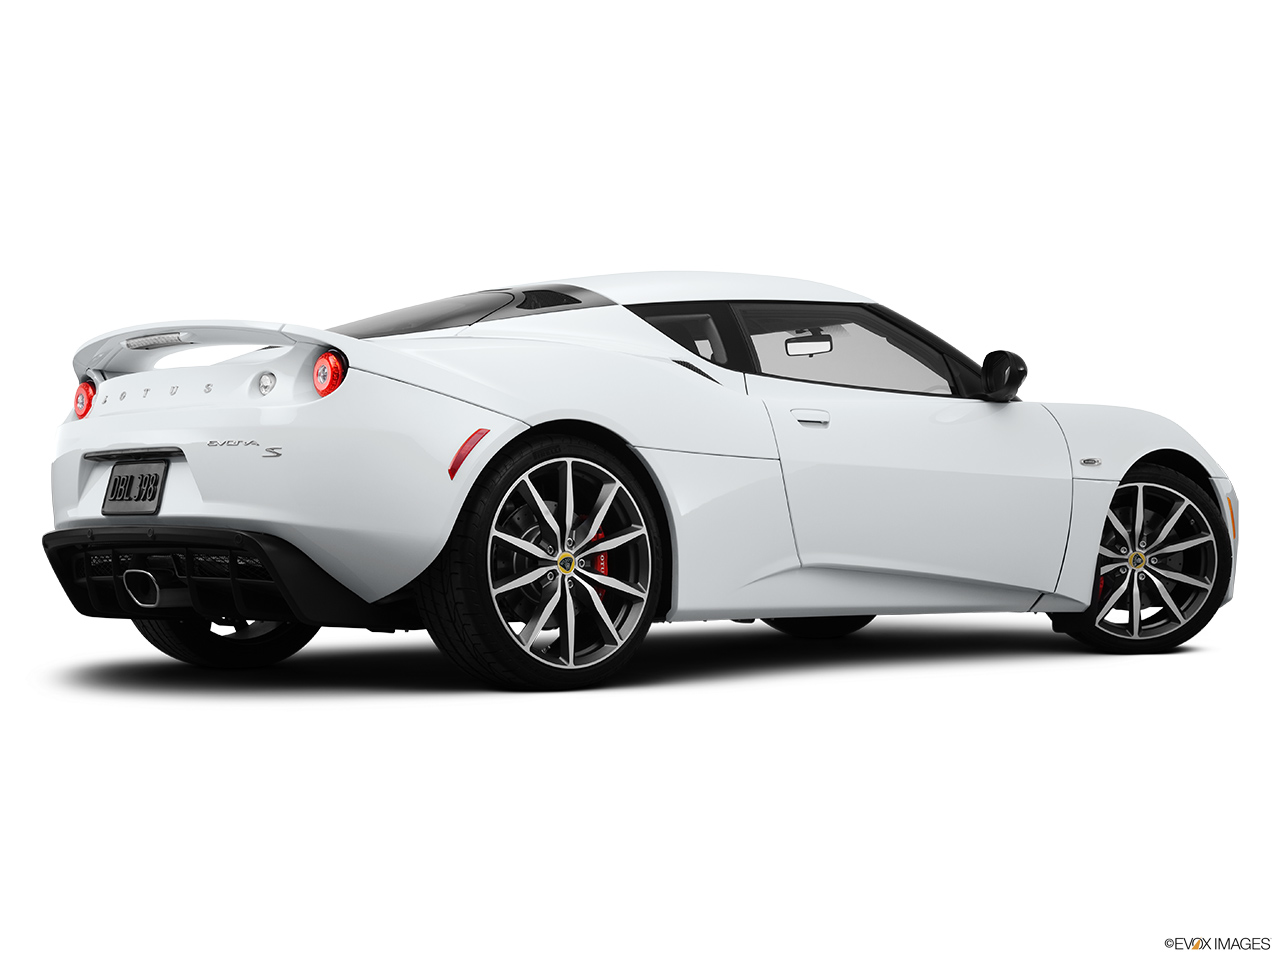 2014 lotus evora coupe 22 lowwide rear 58